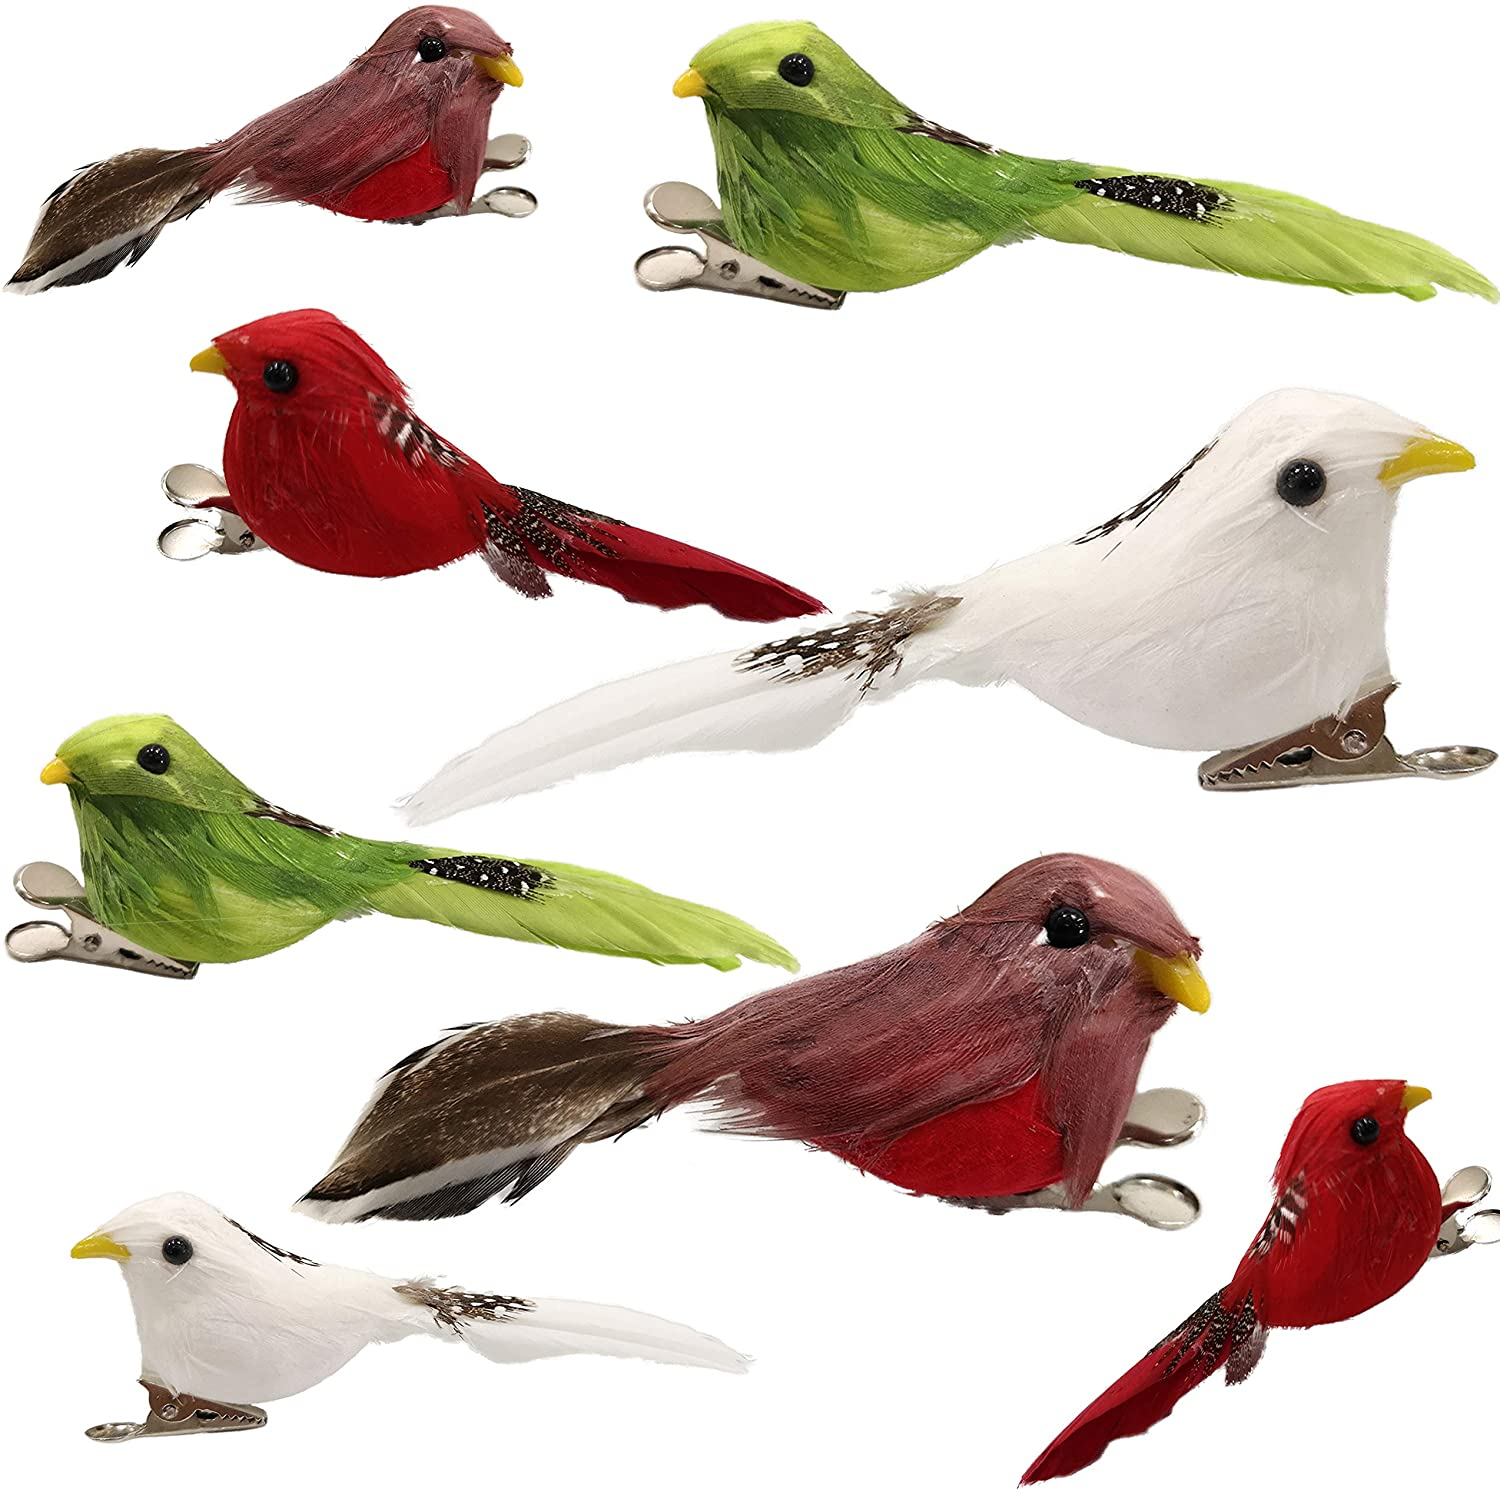 Athoinsu 8 PCS Artificial Easter Feather Robin Birds with Clips Handmade Spring Xmas Holiday Yard Garden Lawn Tree Decor Party Favors